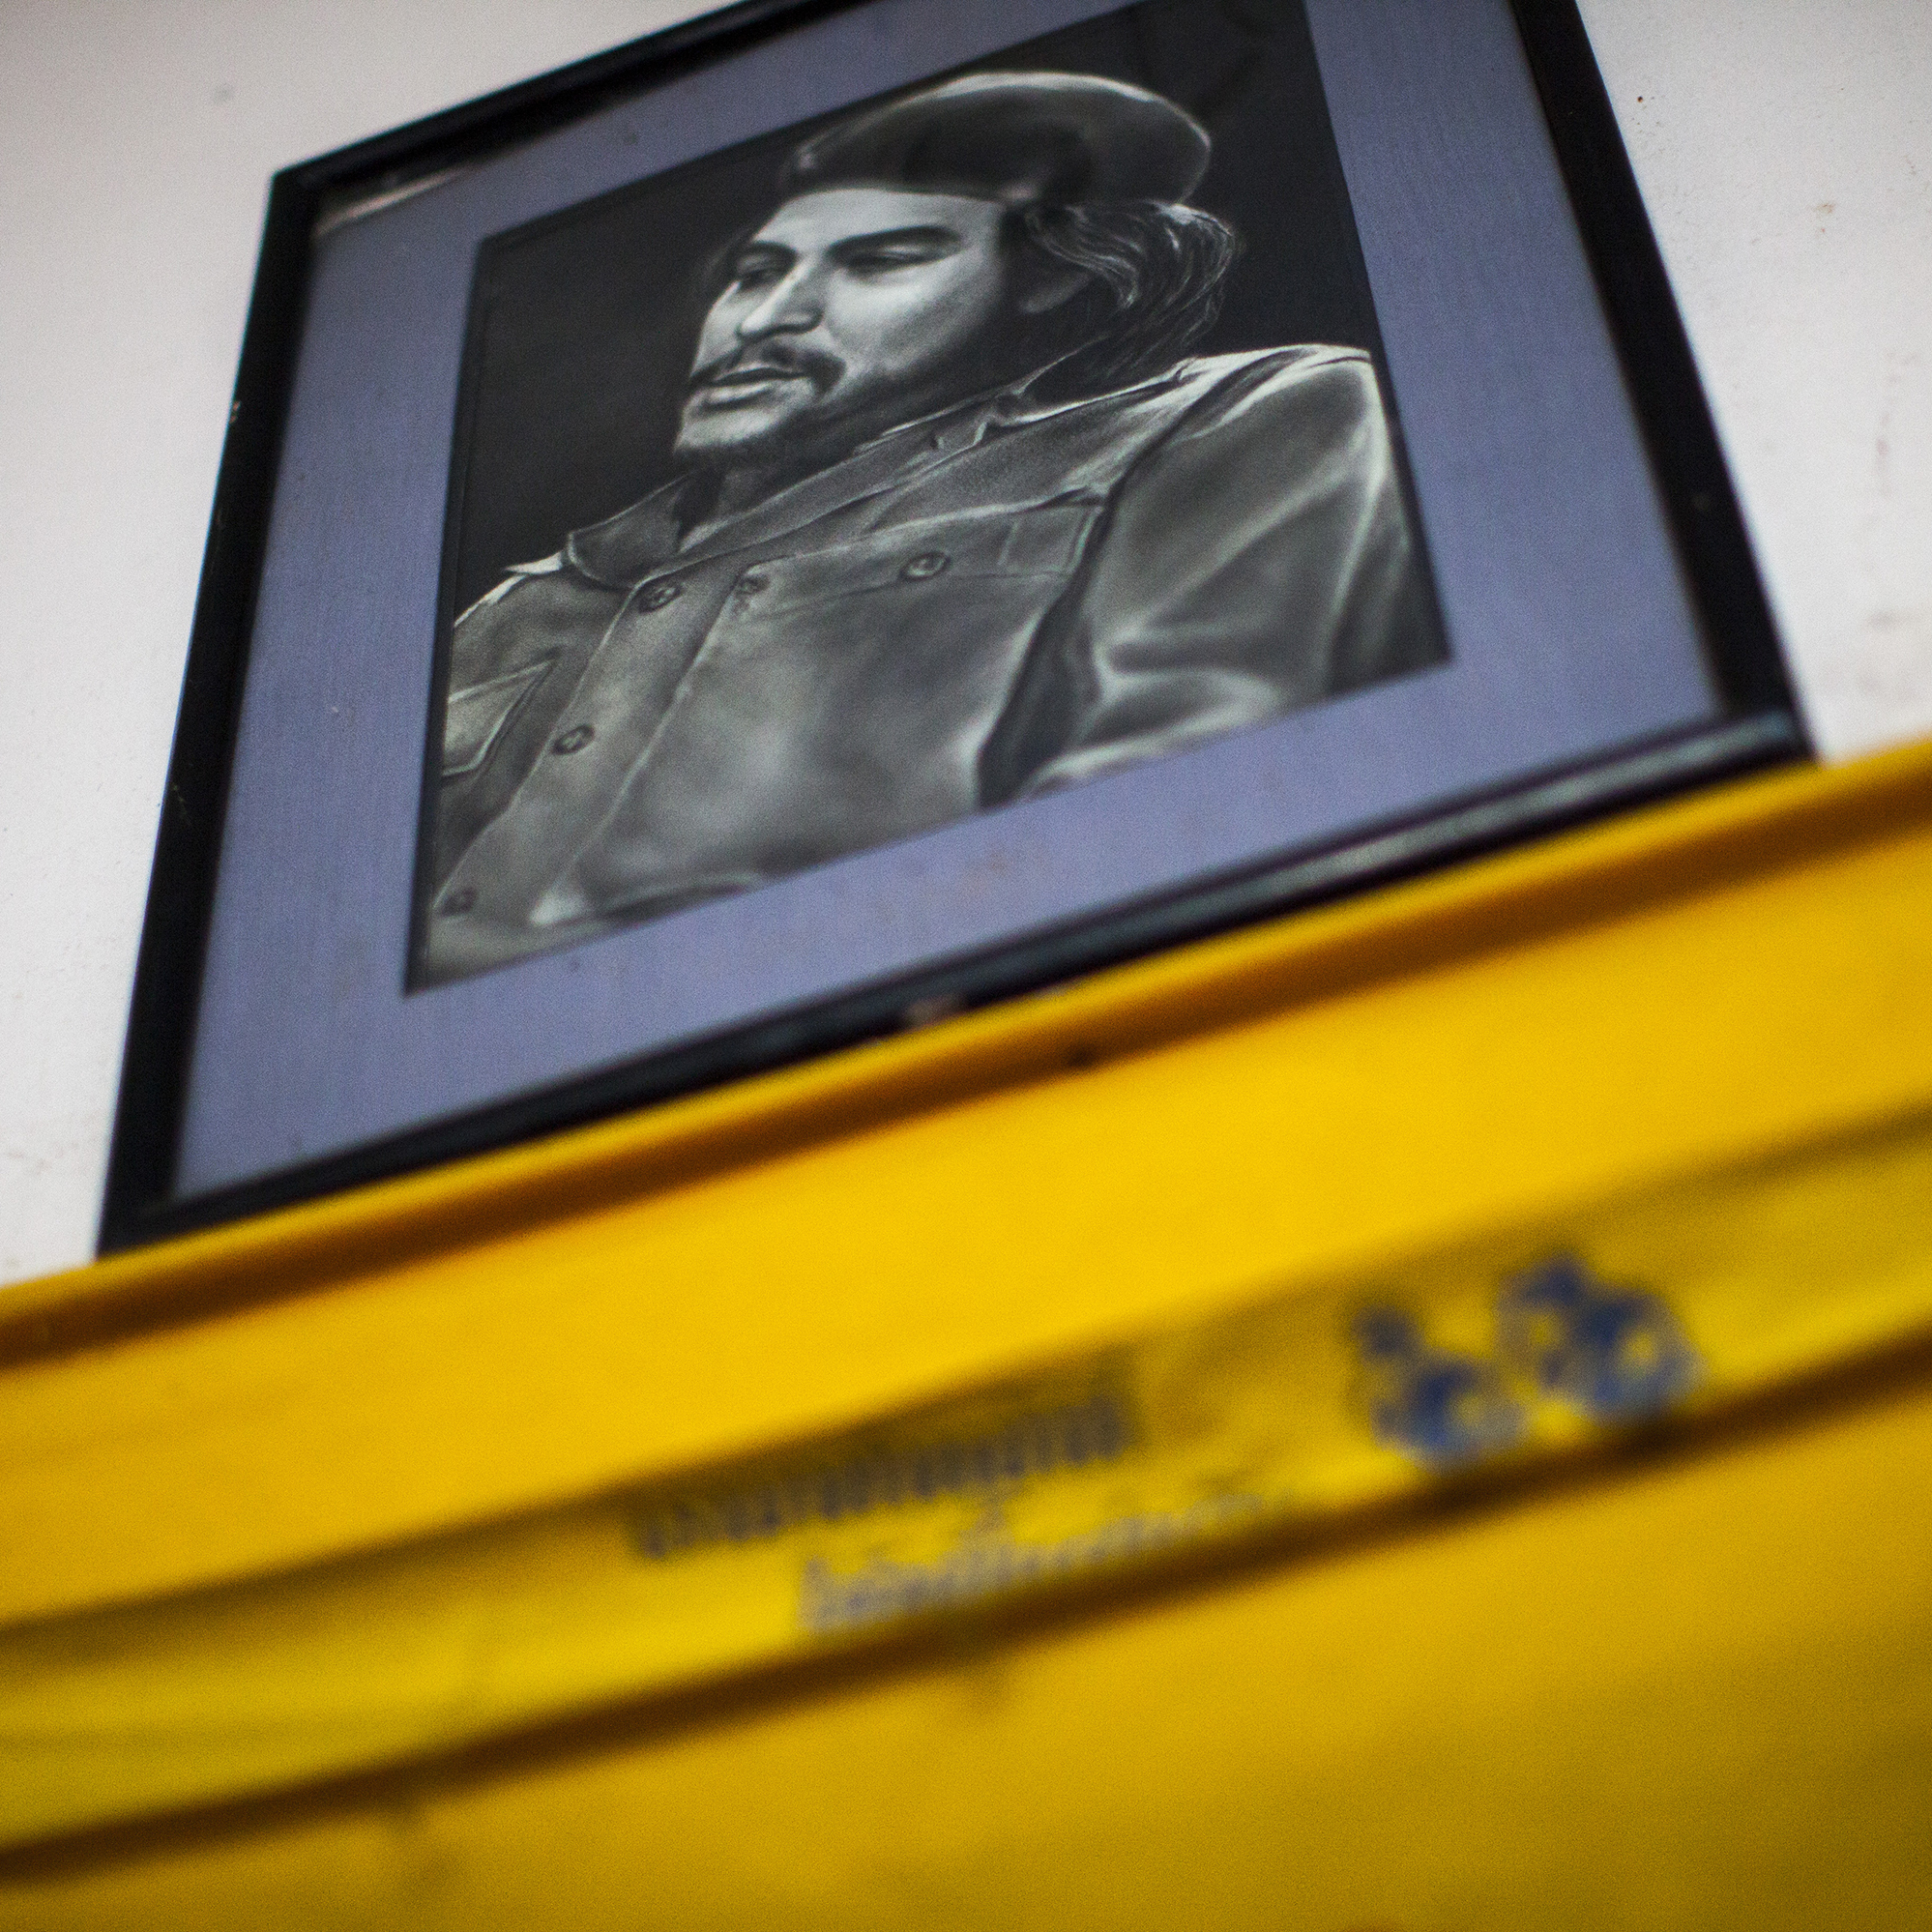 The decor of Aiya includes several portraits of Che Guevara. Thu says the Marxist revolutionary represents for him a symbol of international rebellion.